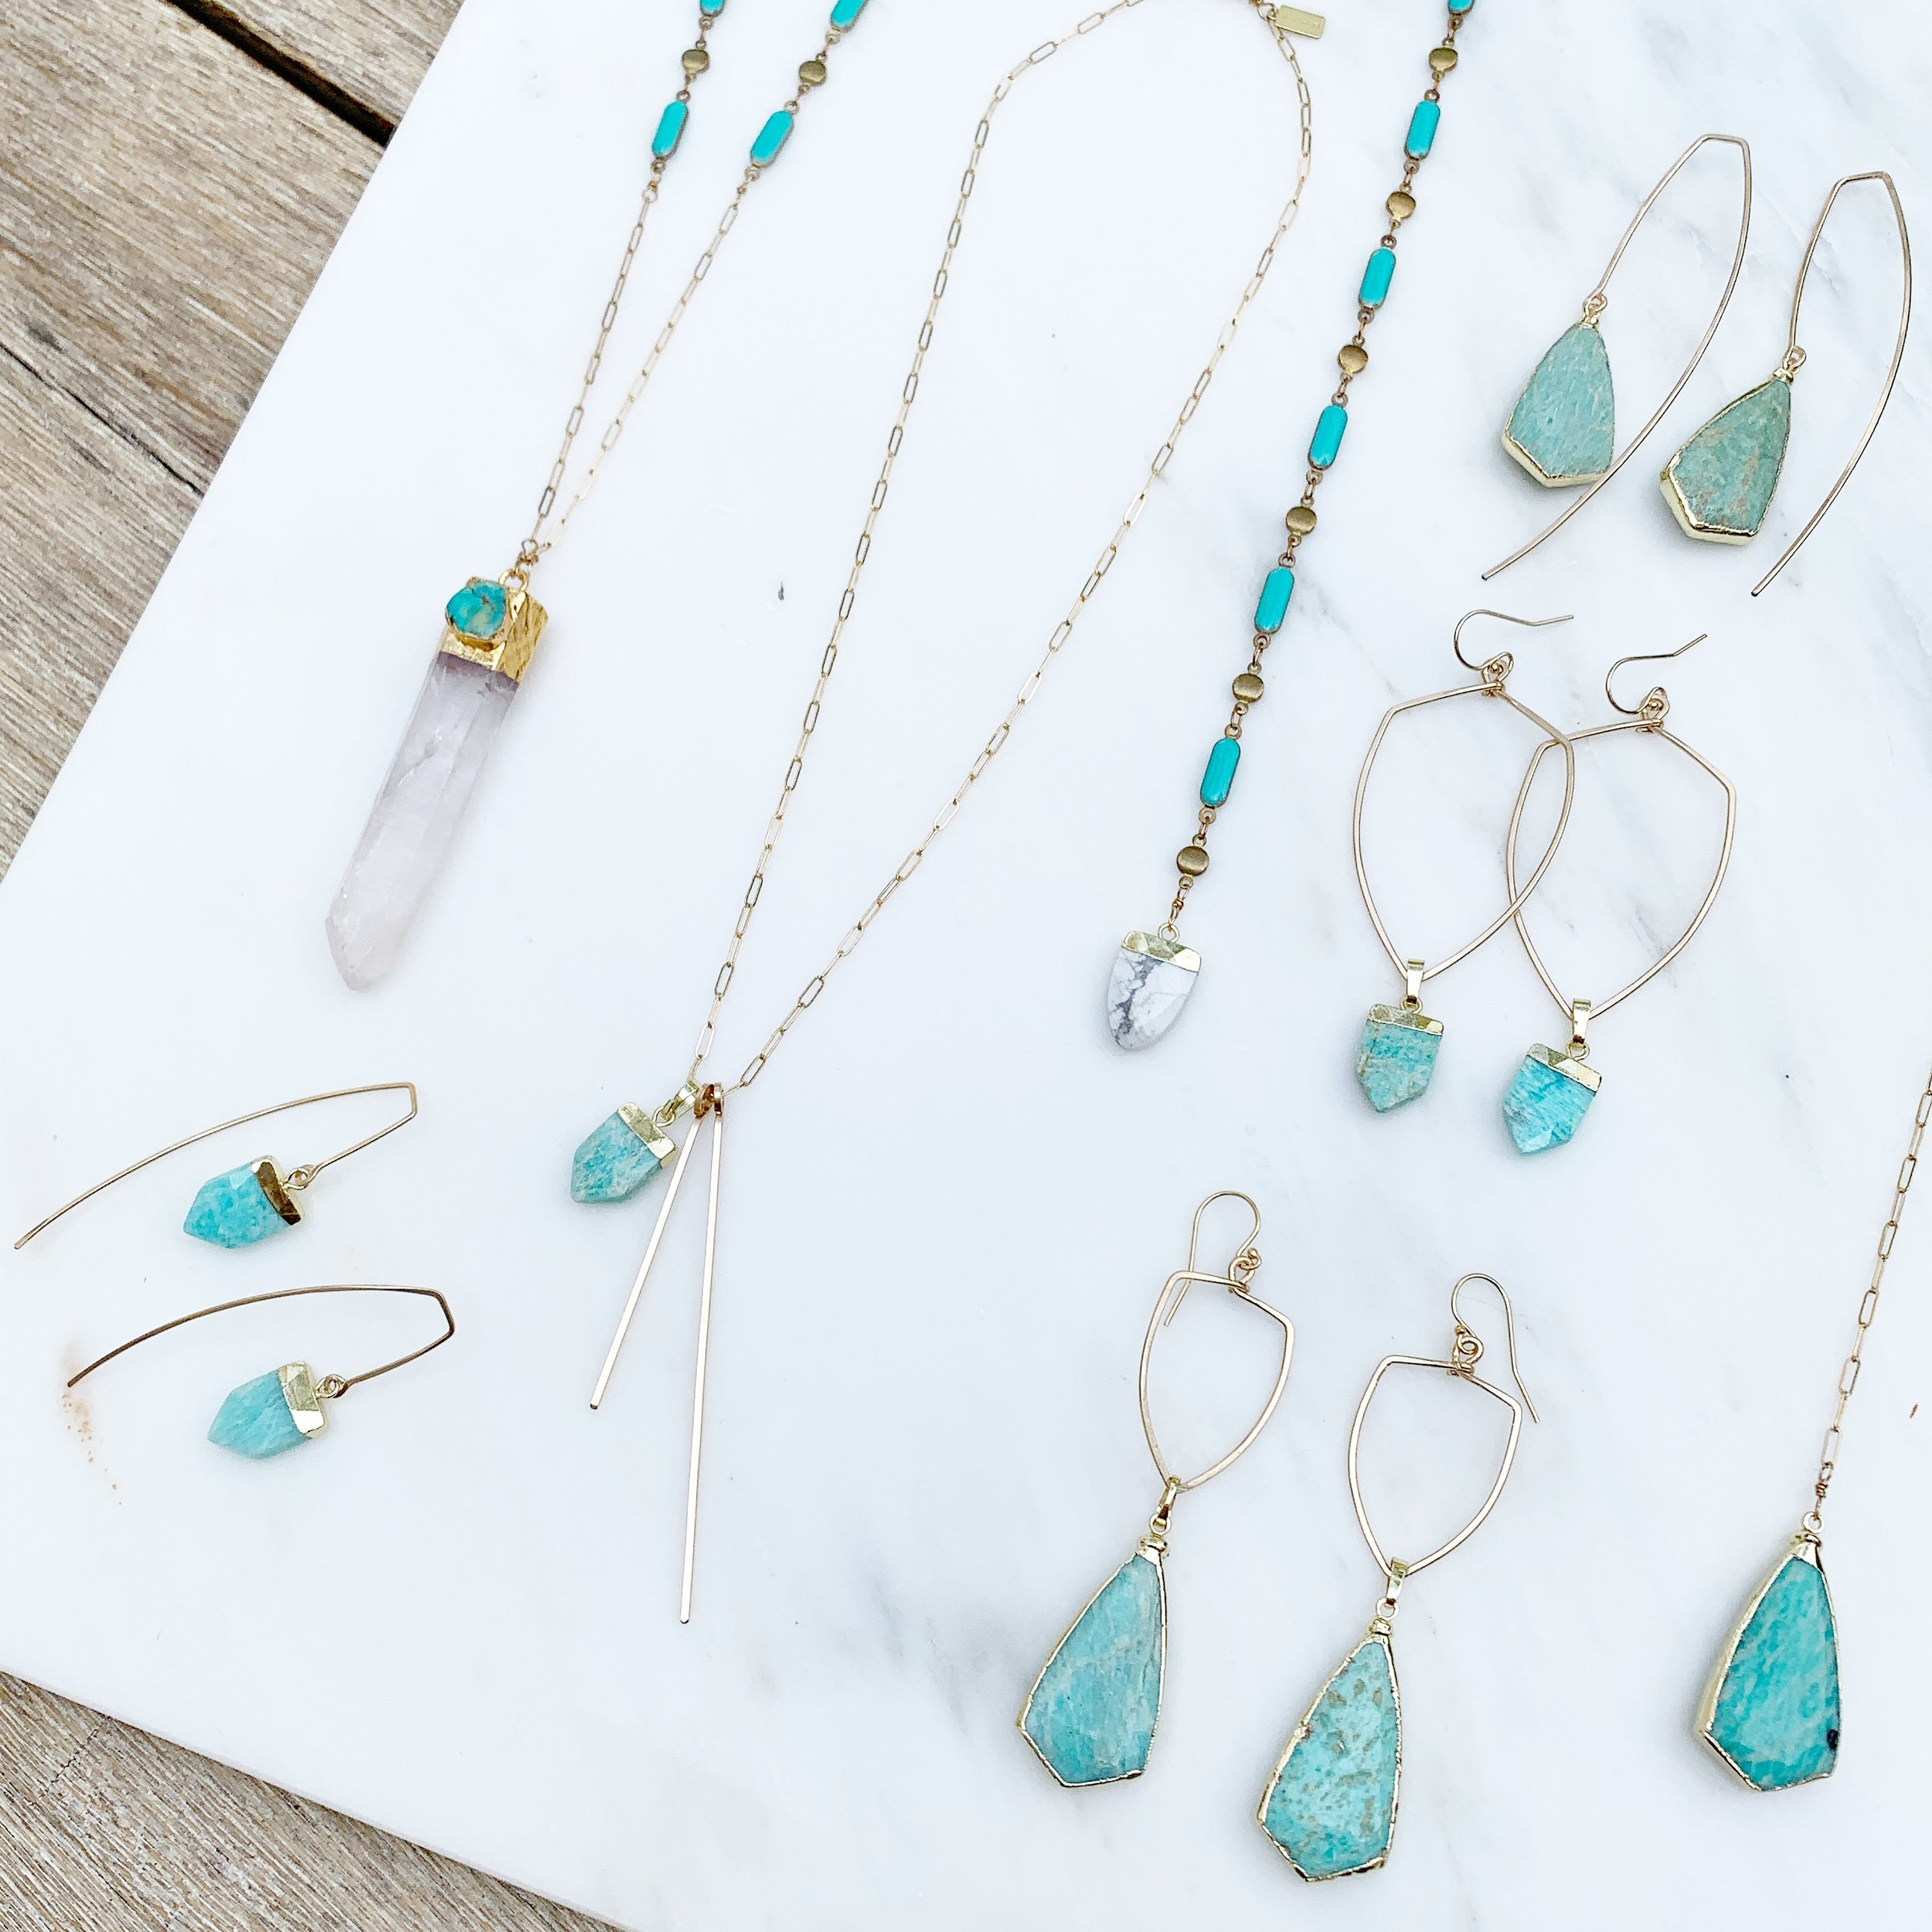 Amazonite jewelry of the SHIELD collection  $34-$135